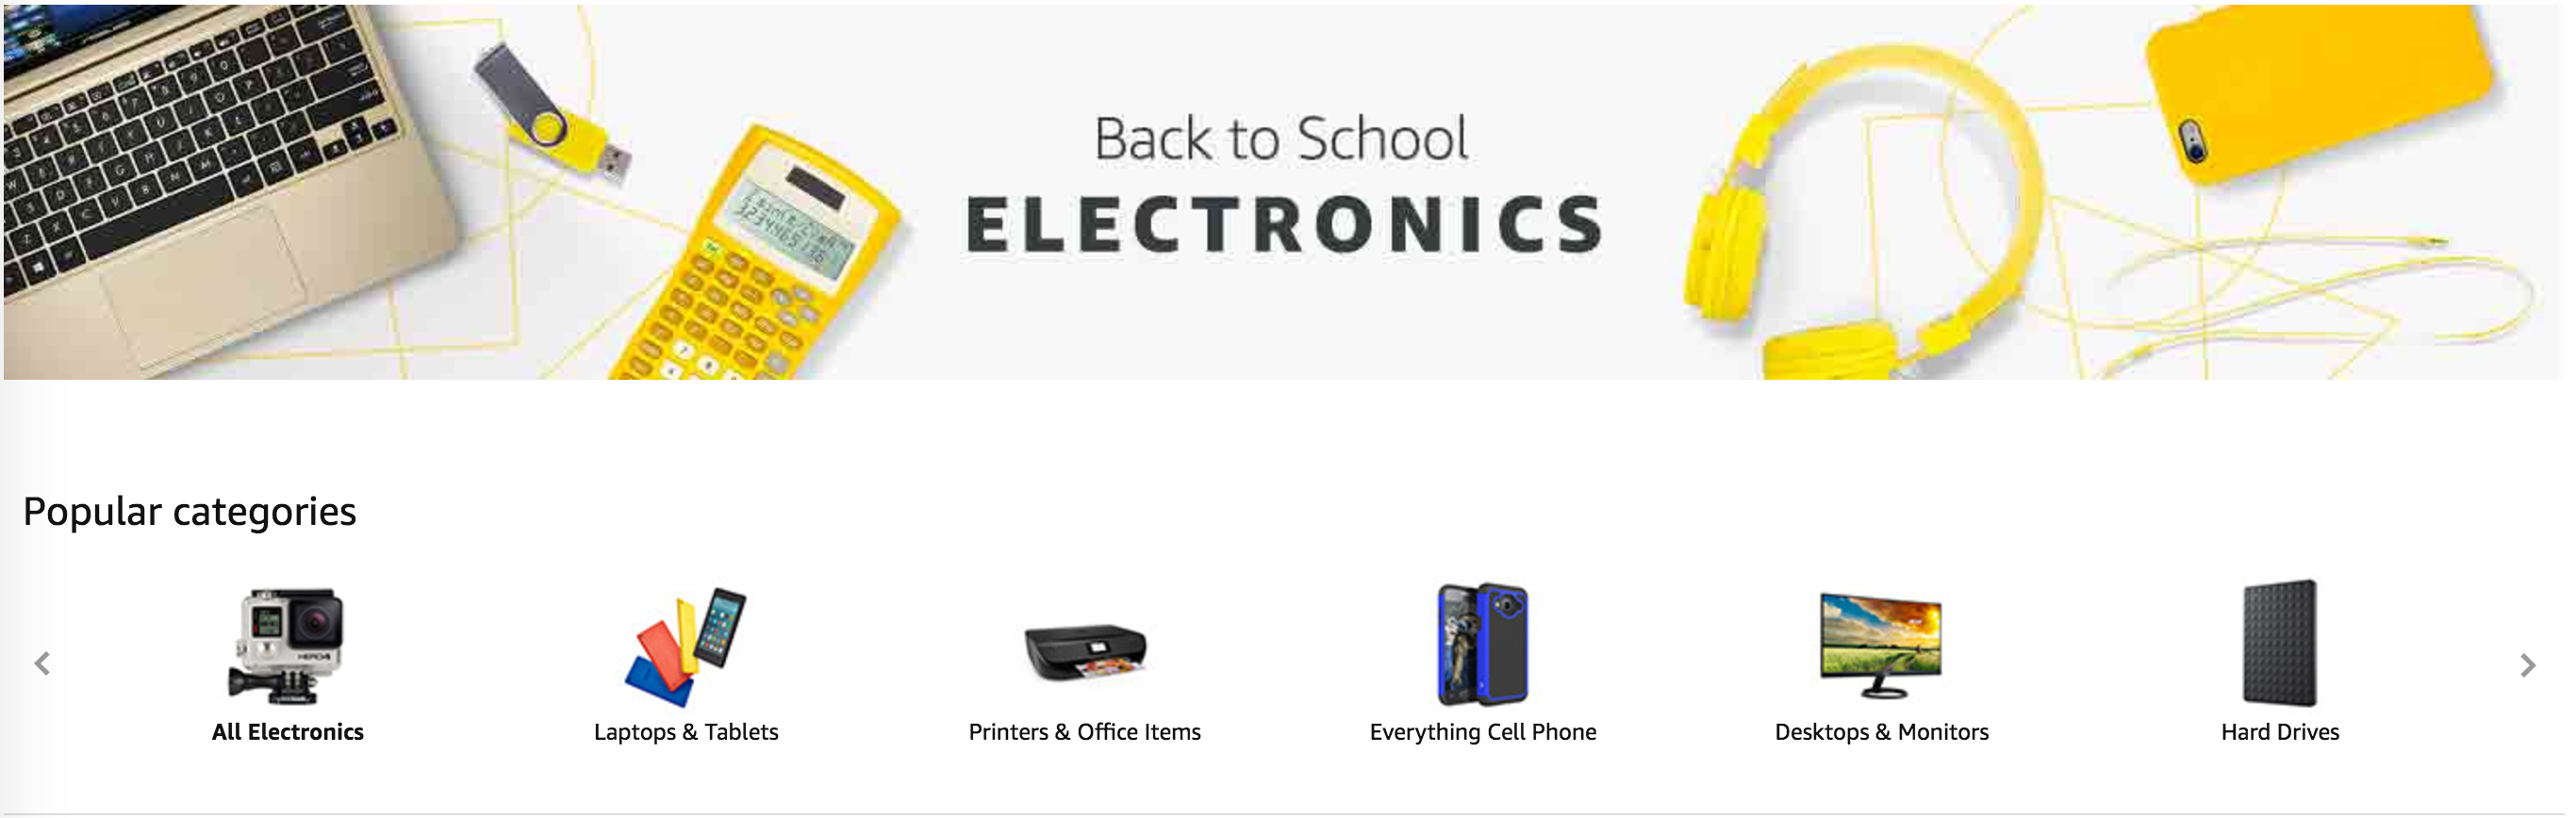 Back to School Electronics